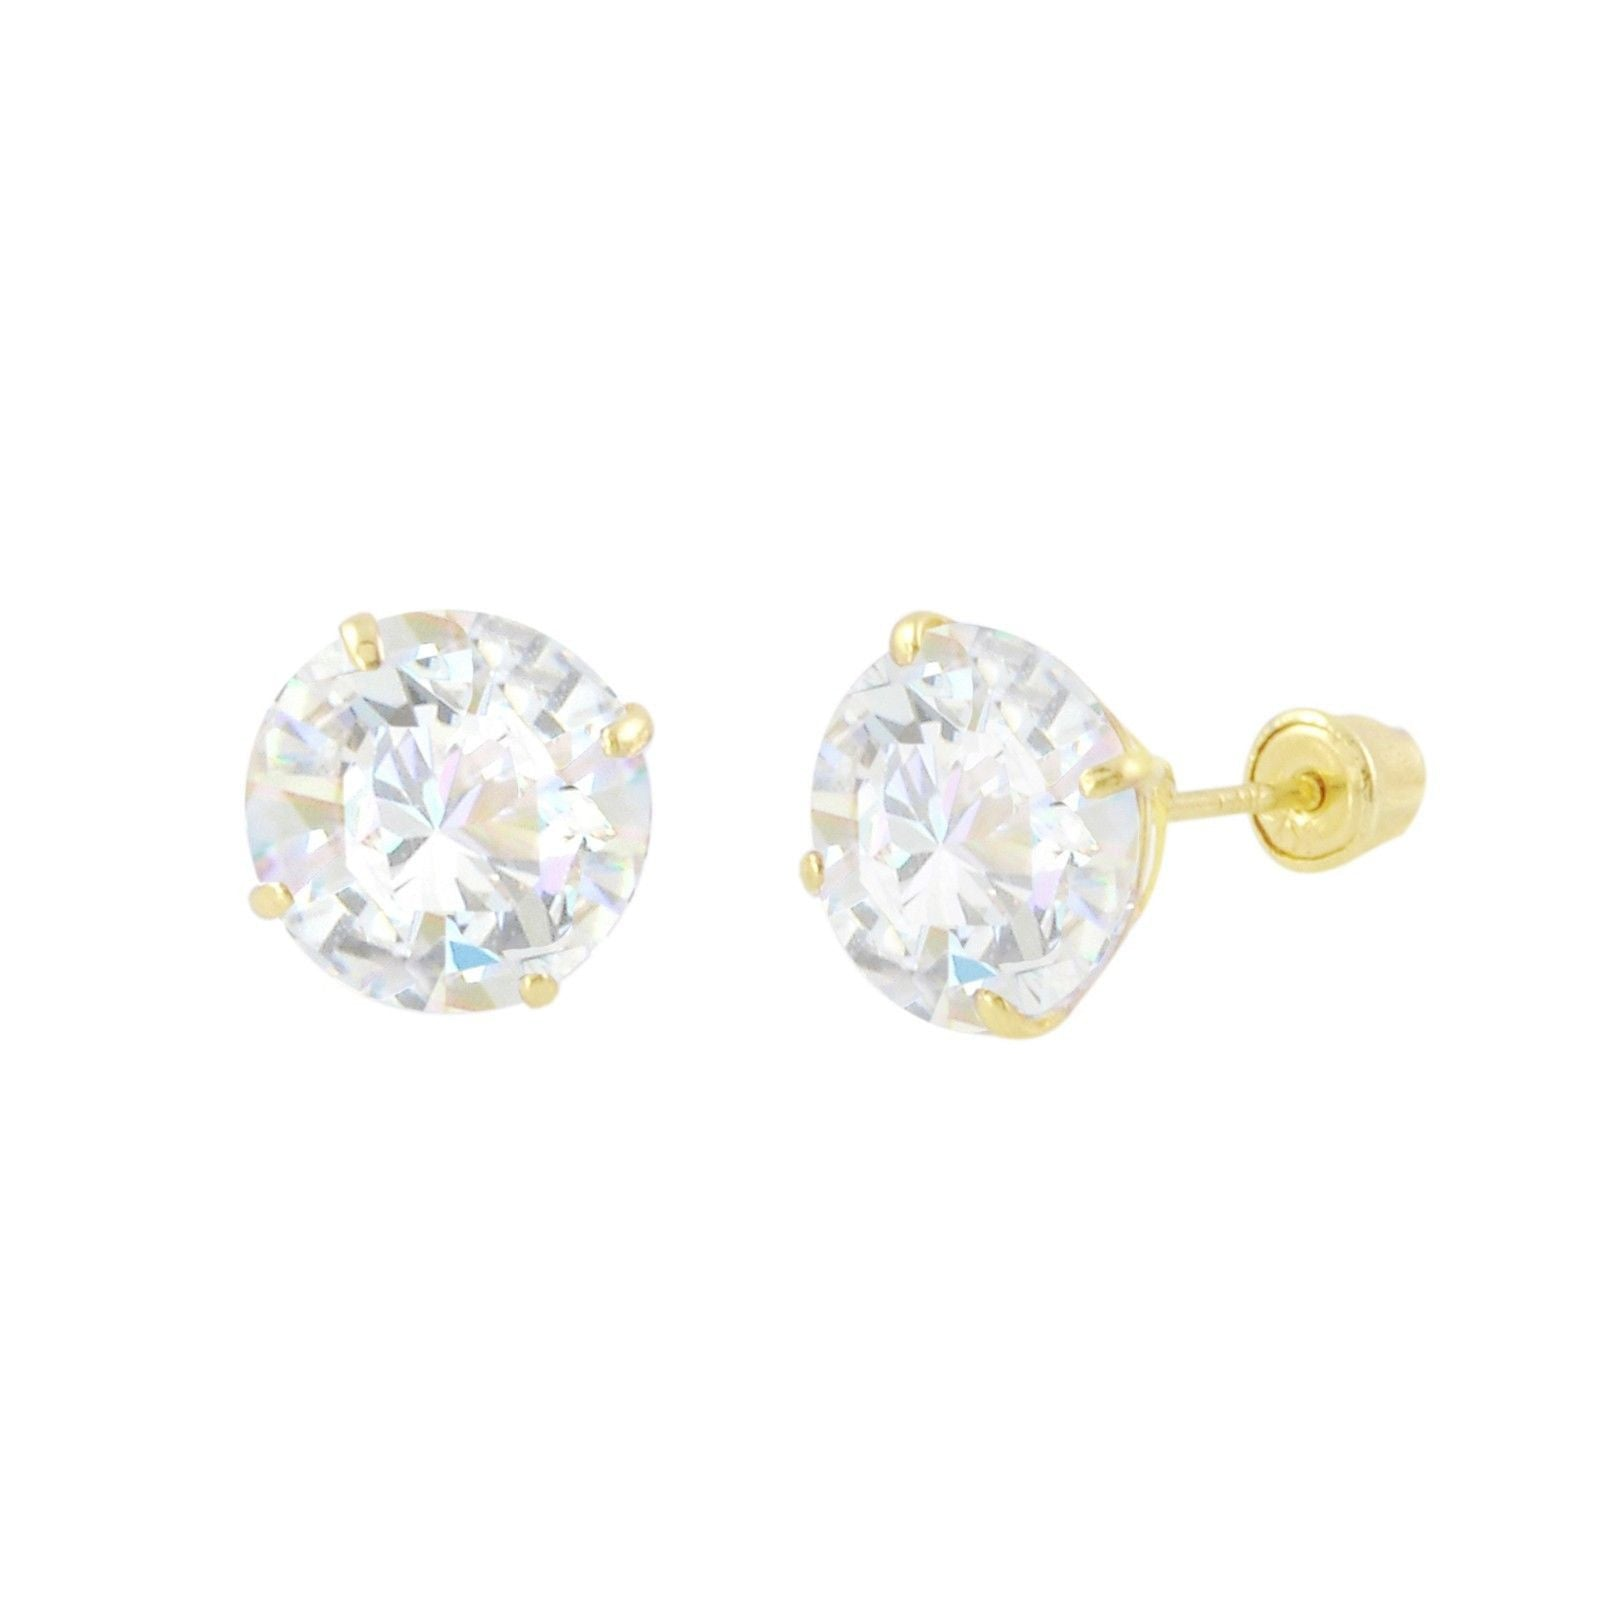 screw white stud products earrings cubic gold fullsizerender back large mimosura